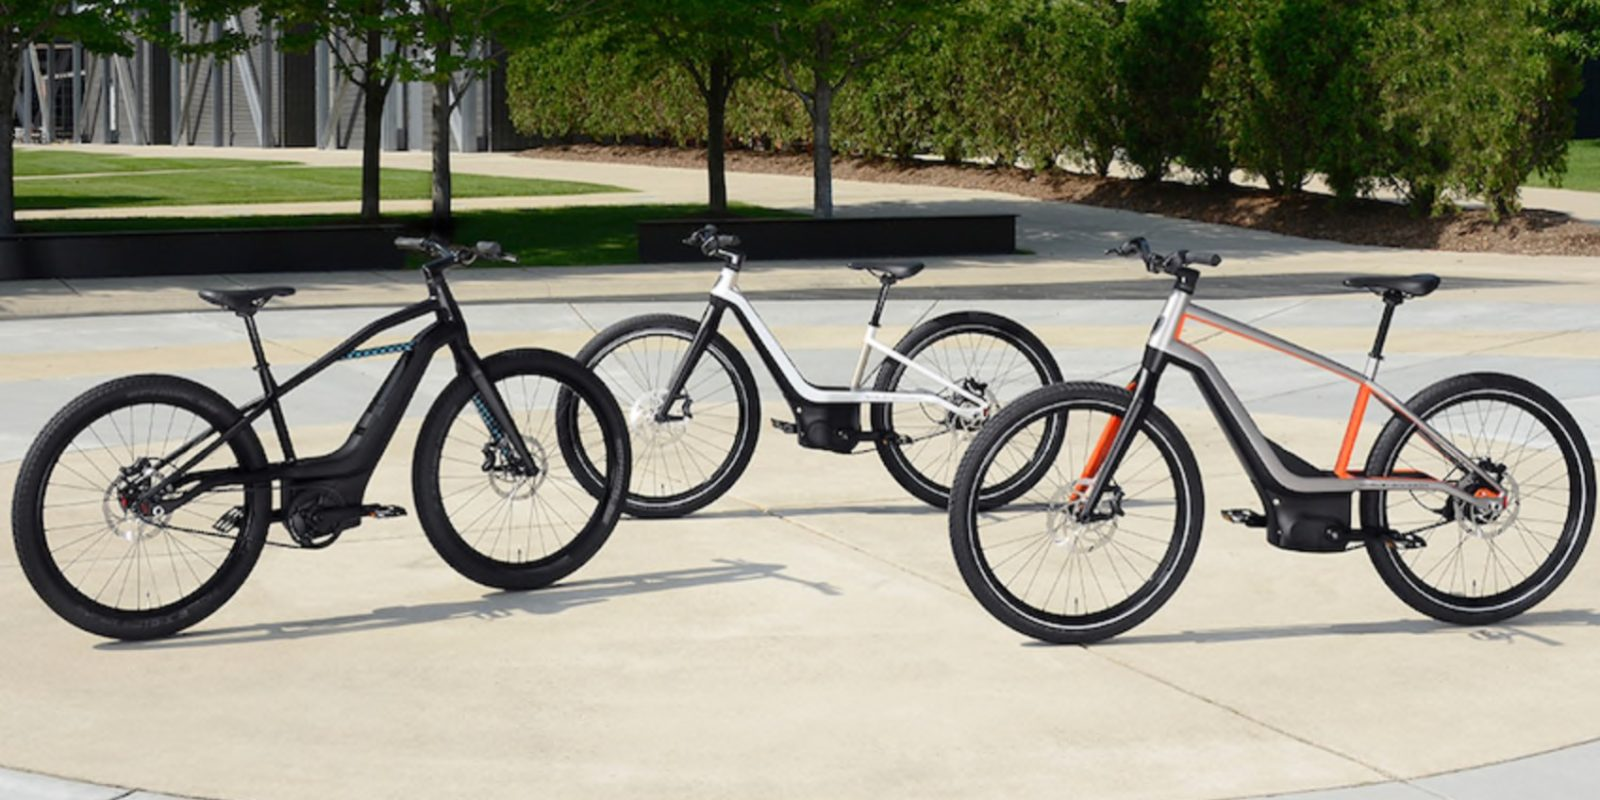 Exclusive: leaks on Harley-Davidson electric bicycles reveal new details